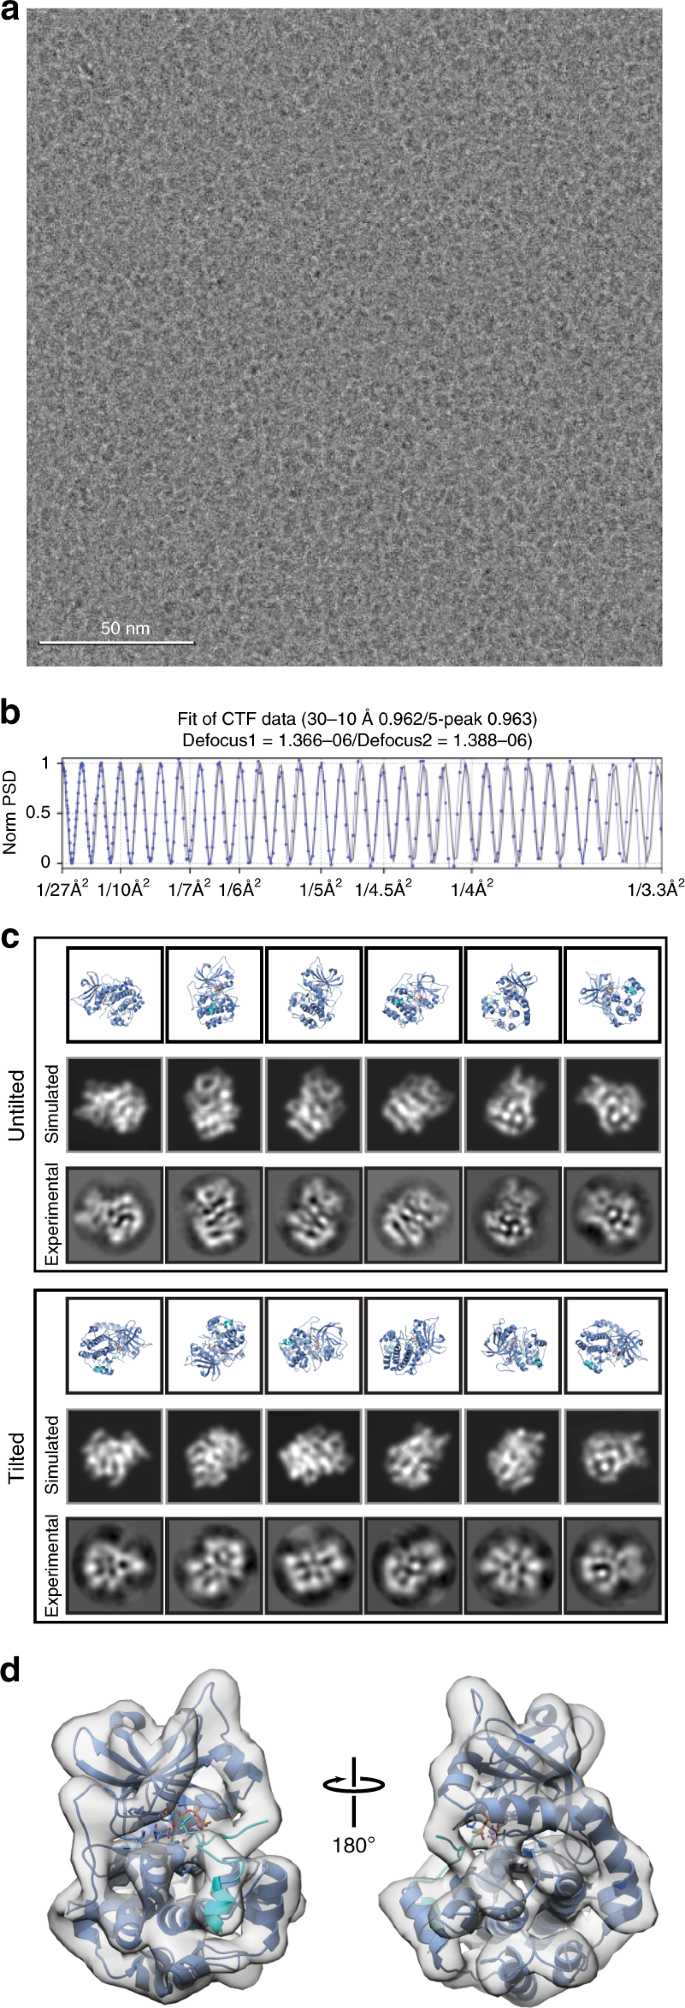 High-resolution structure determination of sub-100 kDa complexes